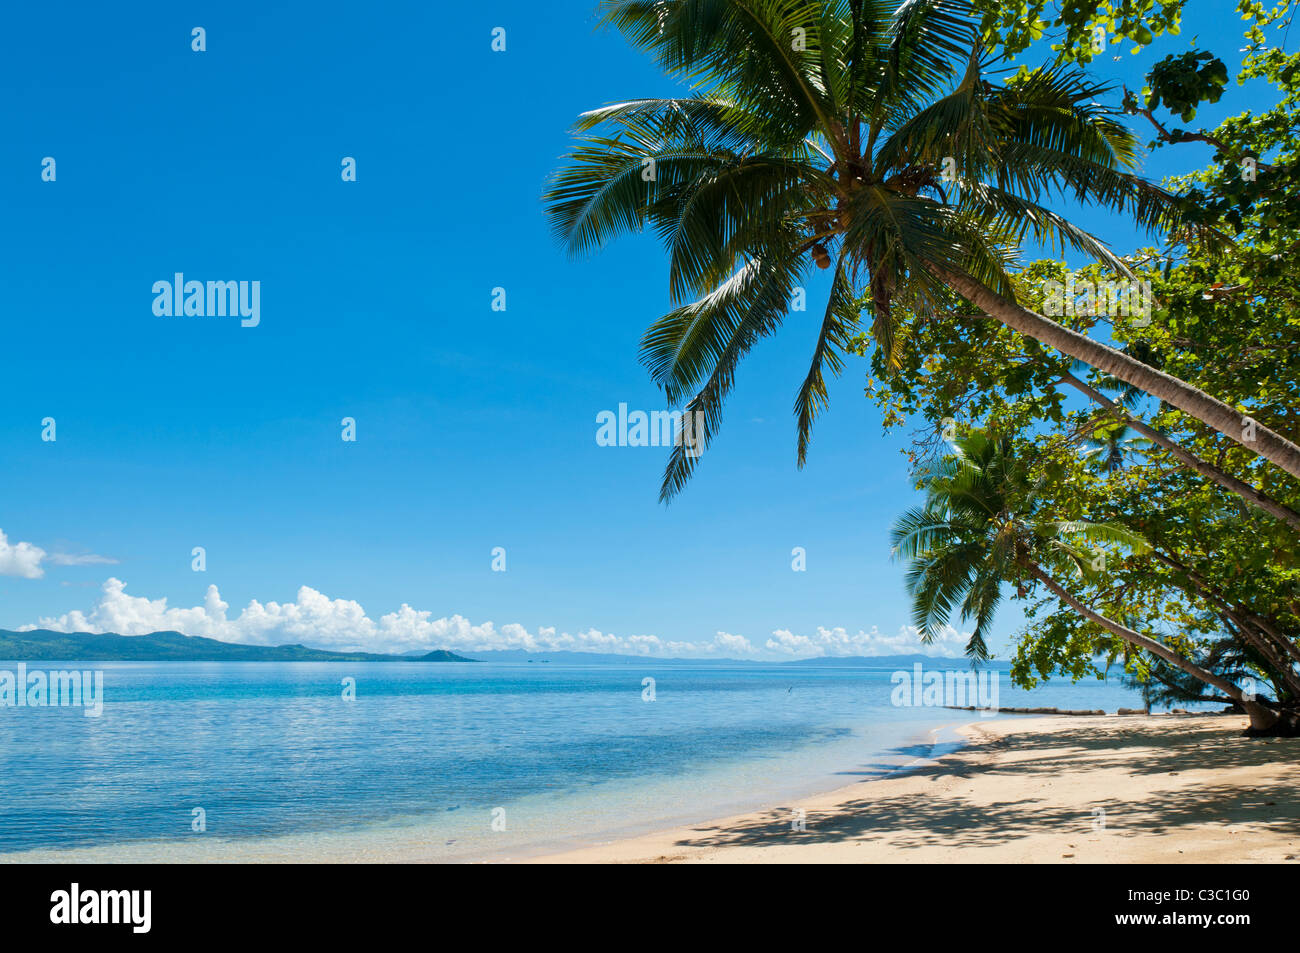 Beach and cocopalm trees at Matangi Private Island Resort, Fiji. - Stock Image